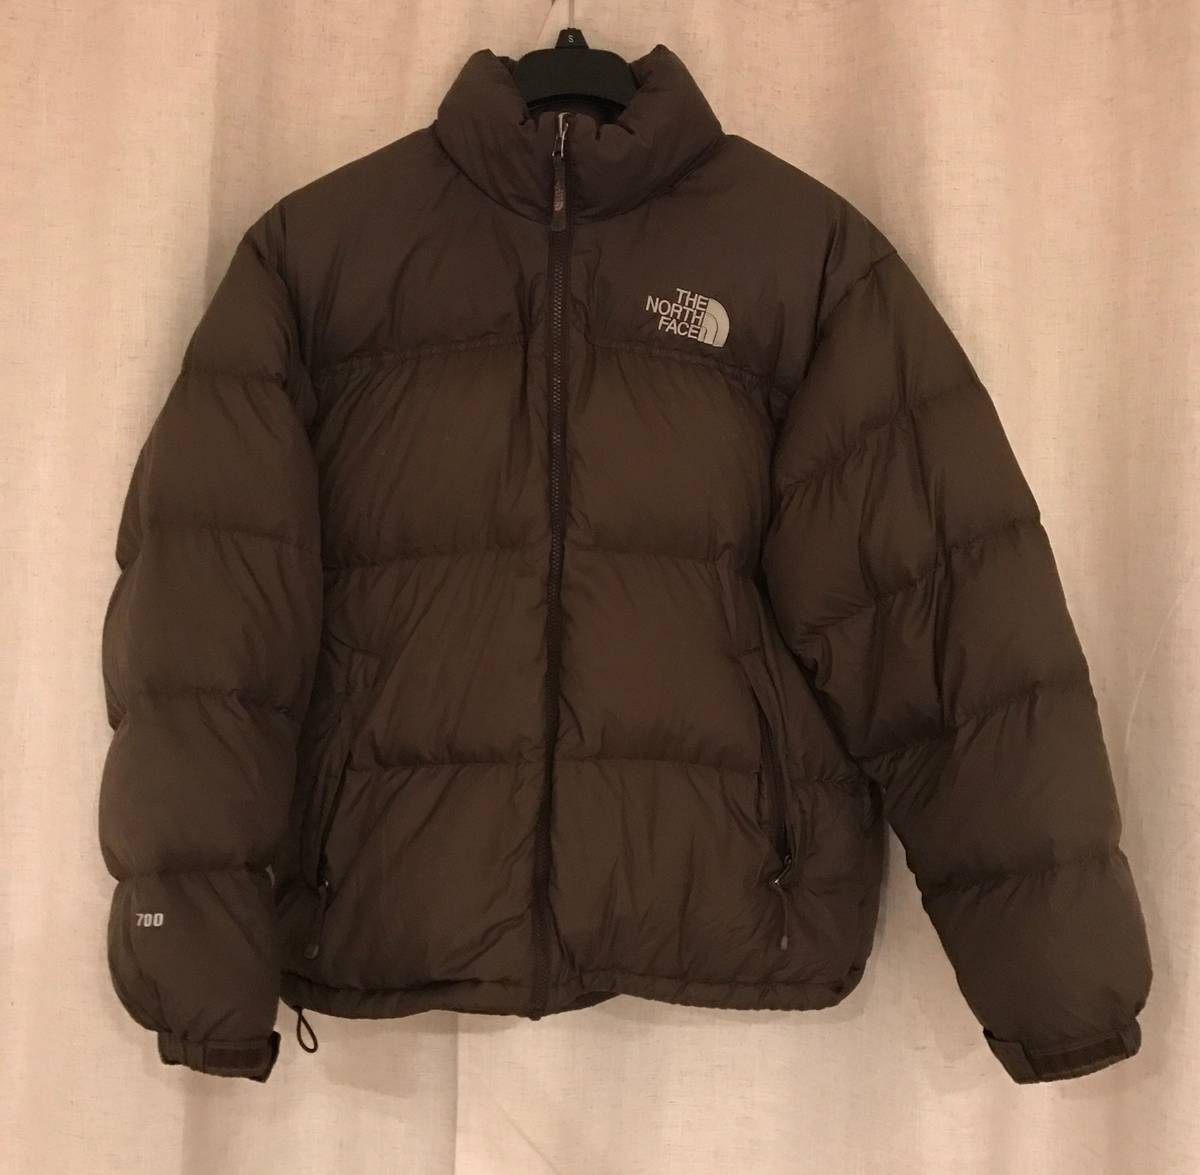 4f712e9333 The North Face TNF The North Face 700 Puffer Down Jacket OLIVE Size ...